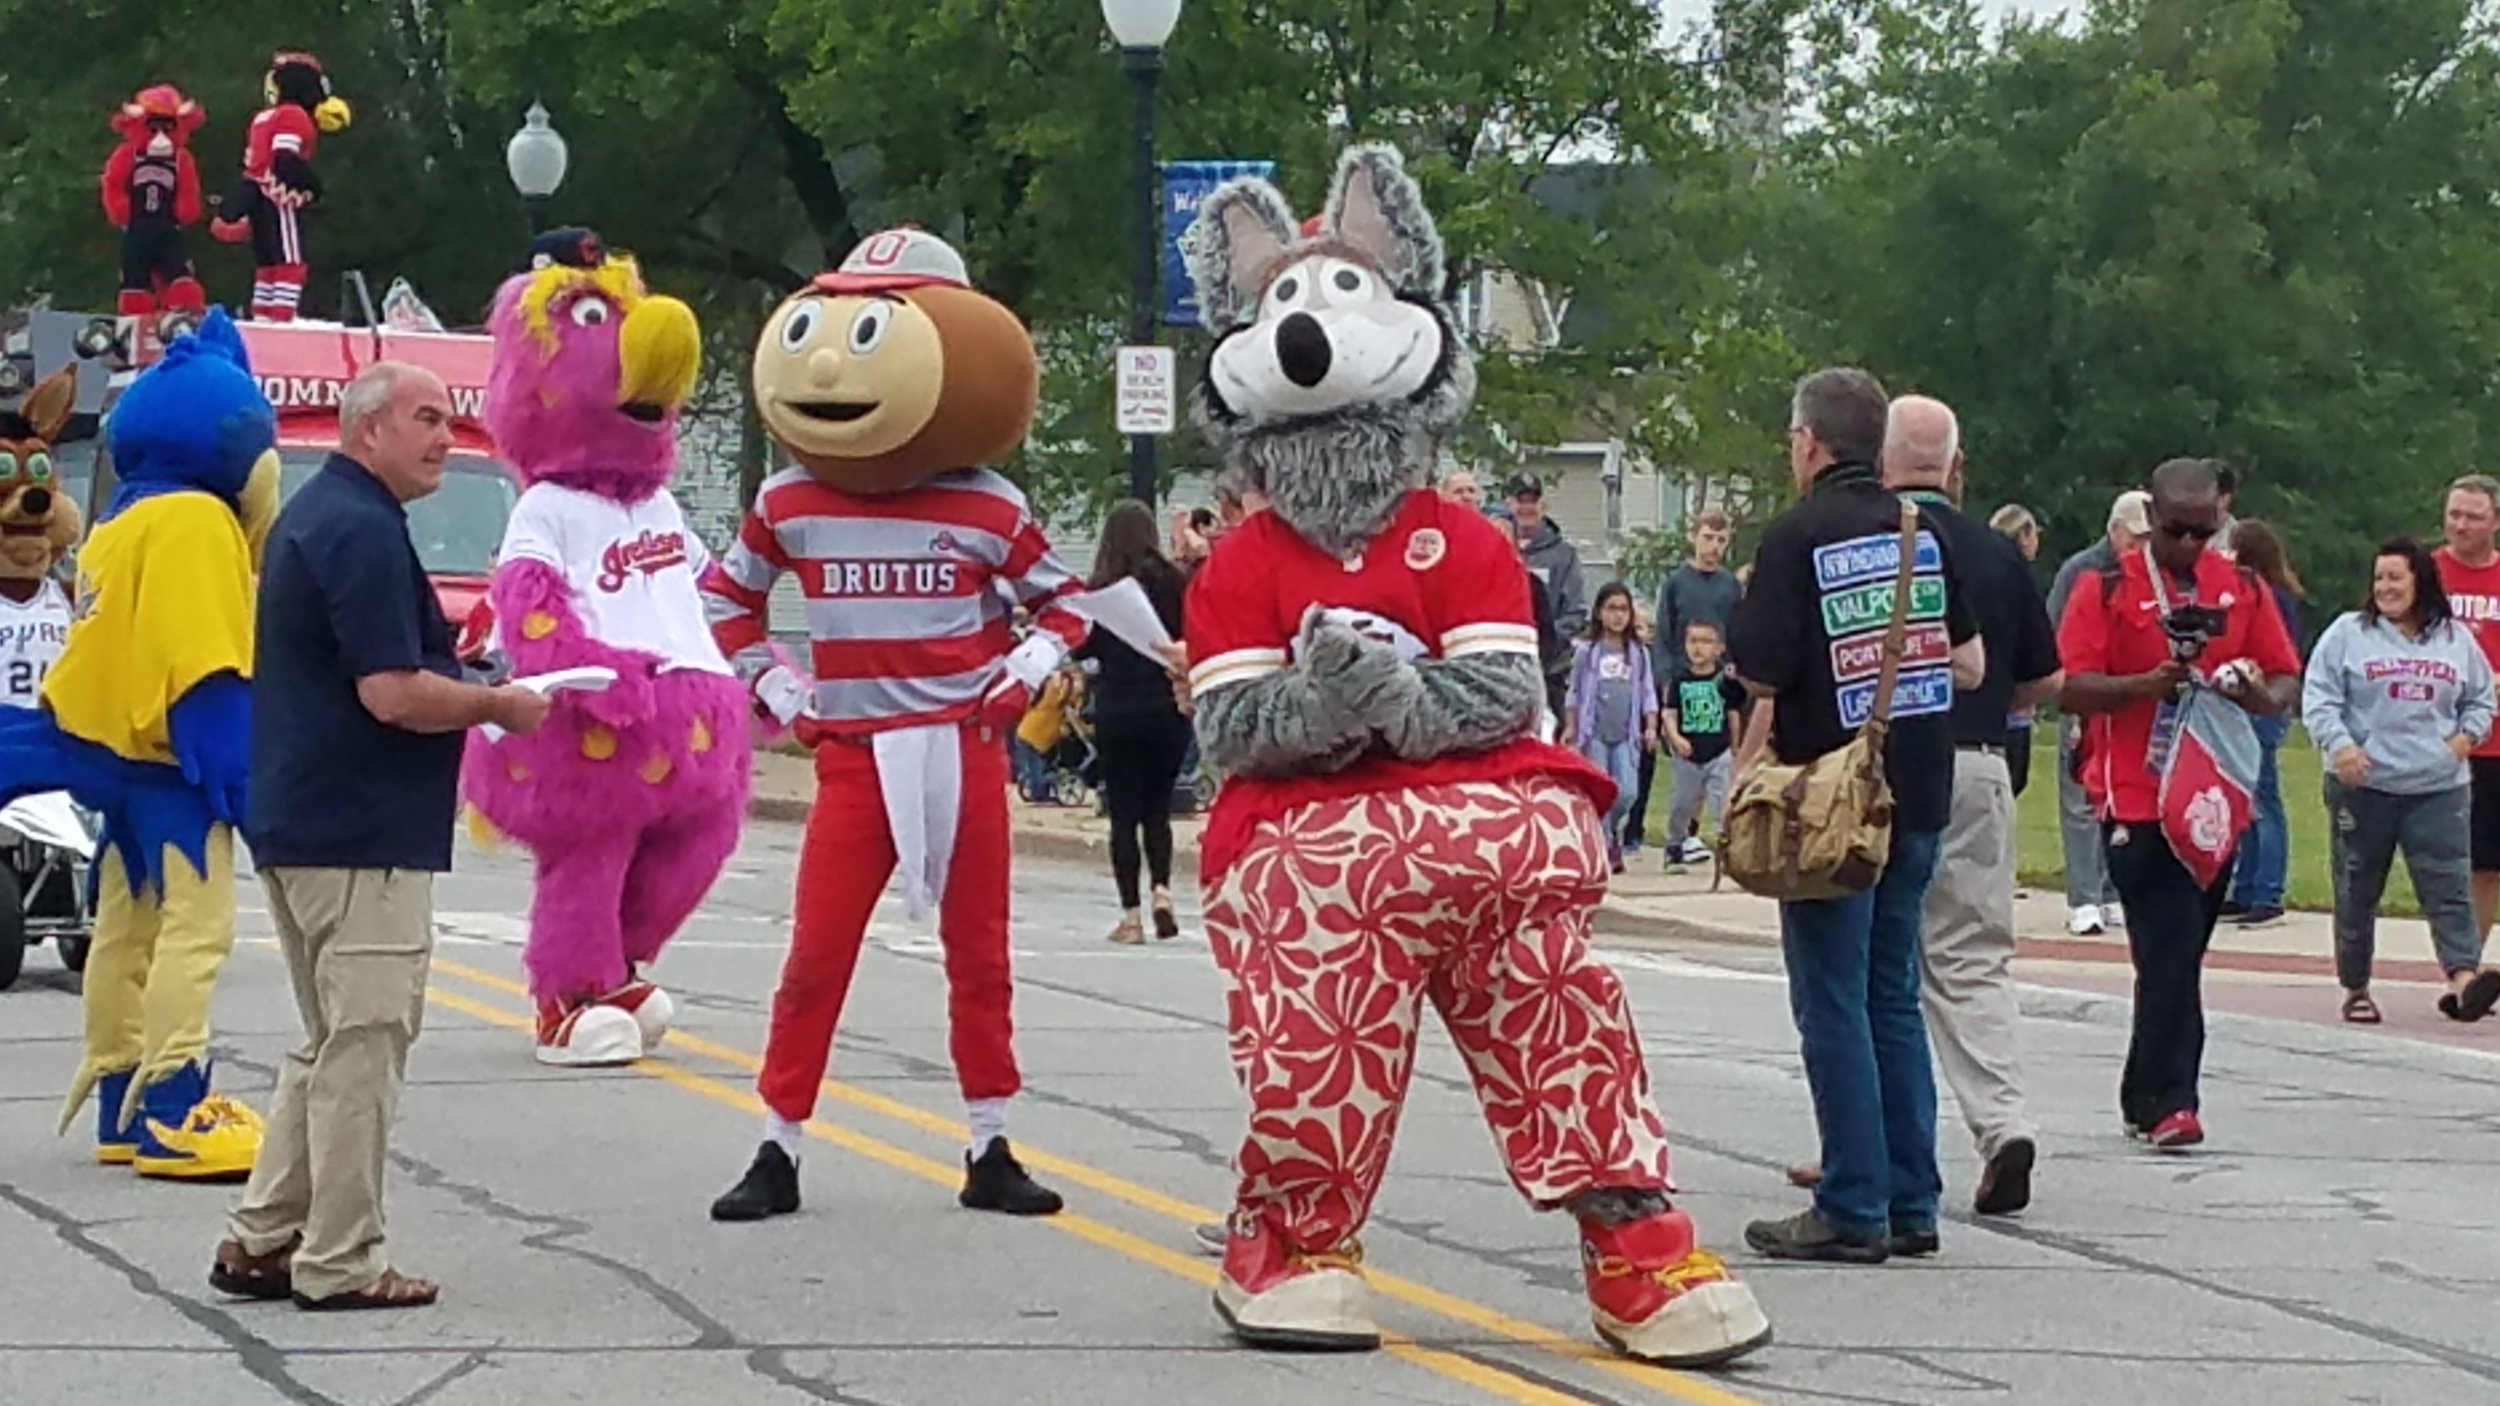 KC Wolf of the Kansas City Chiefs, Brutus Buckeye from Ohio State University, and Slider of the Cleveland Indians walk down 119th Street as part of the Hall-of-Fame induction weekend fun at the Mascot Museum in Whiting.